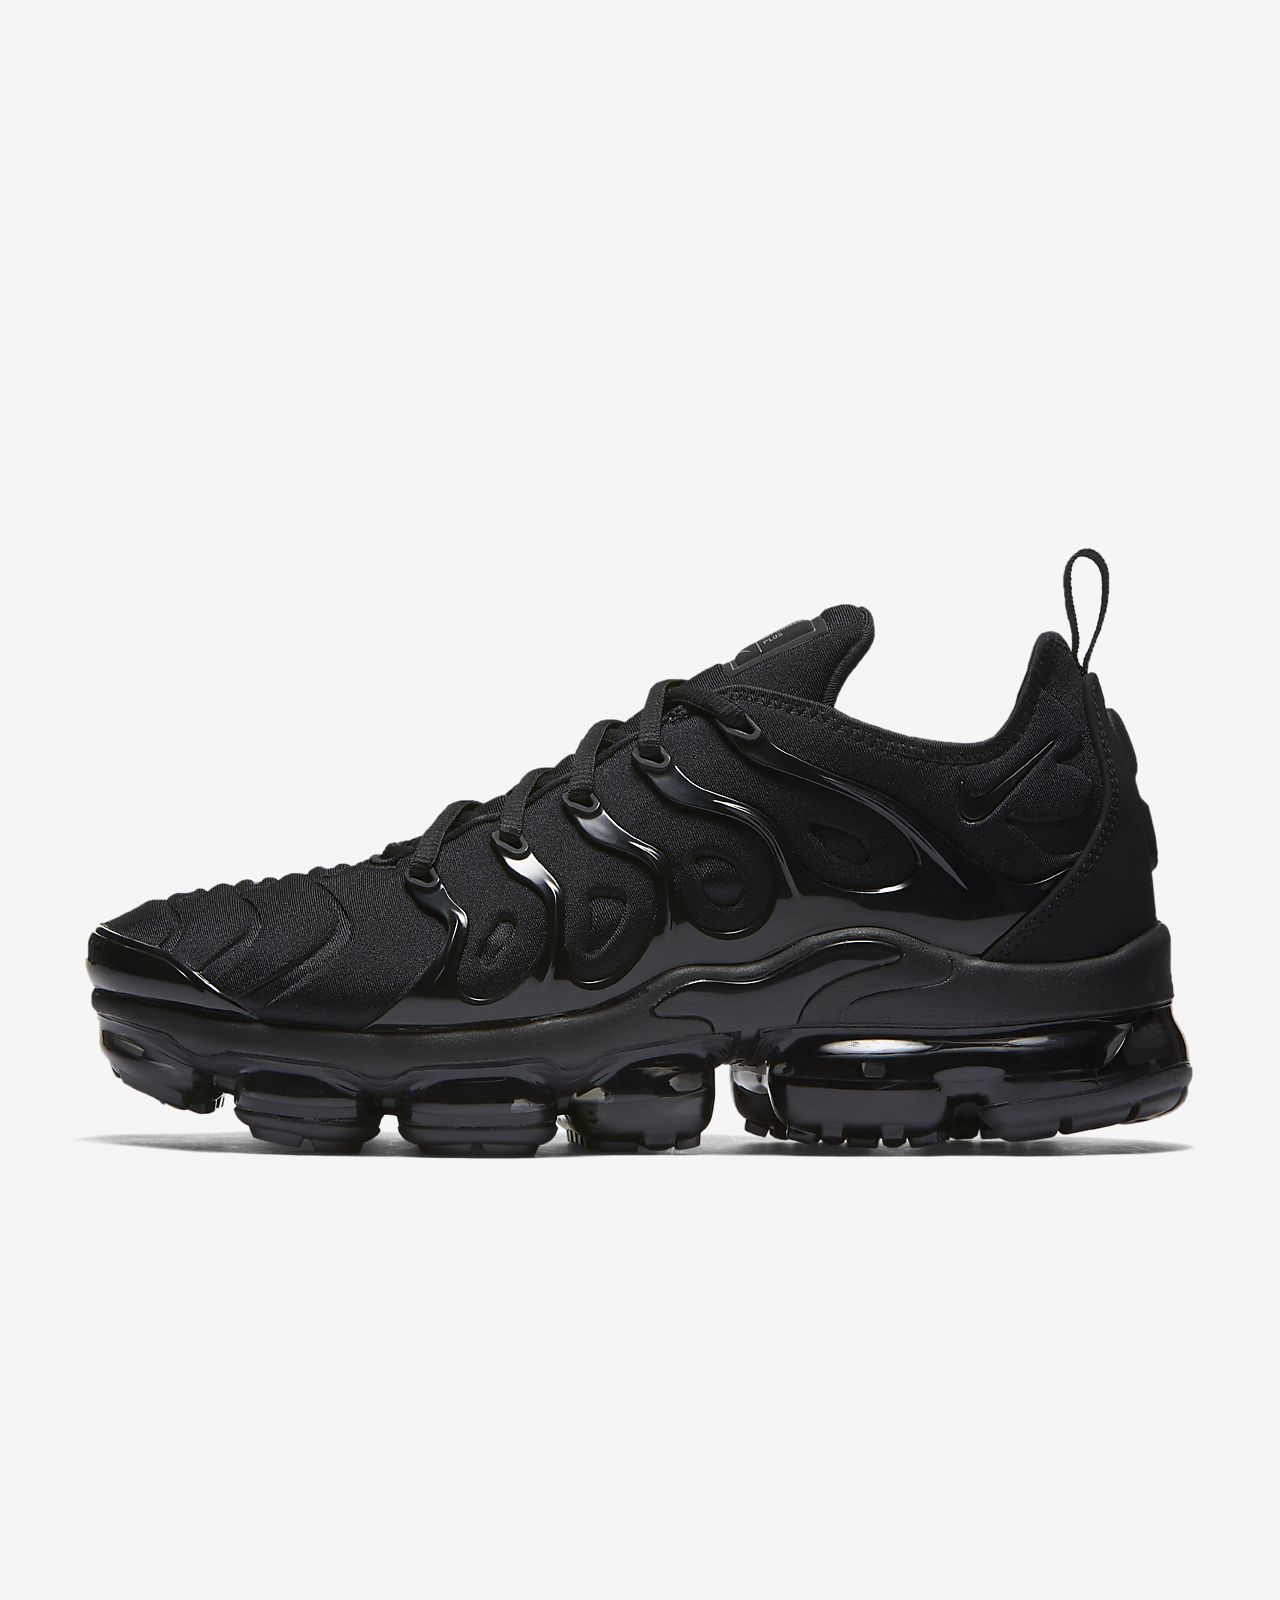 vapormax air max plus